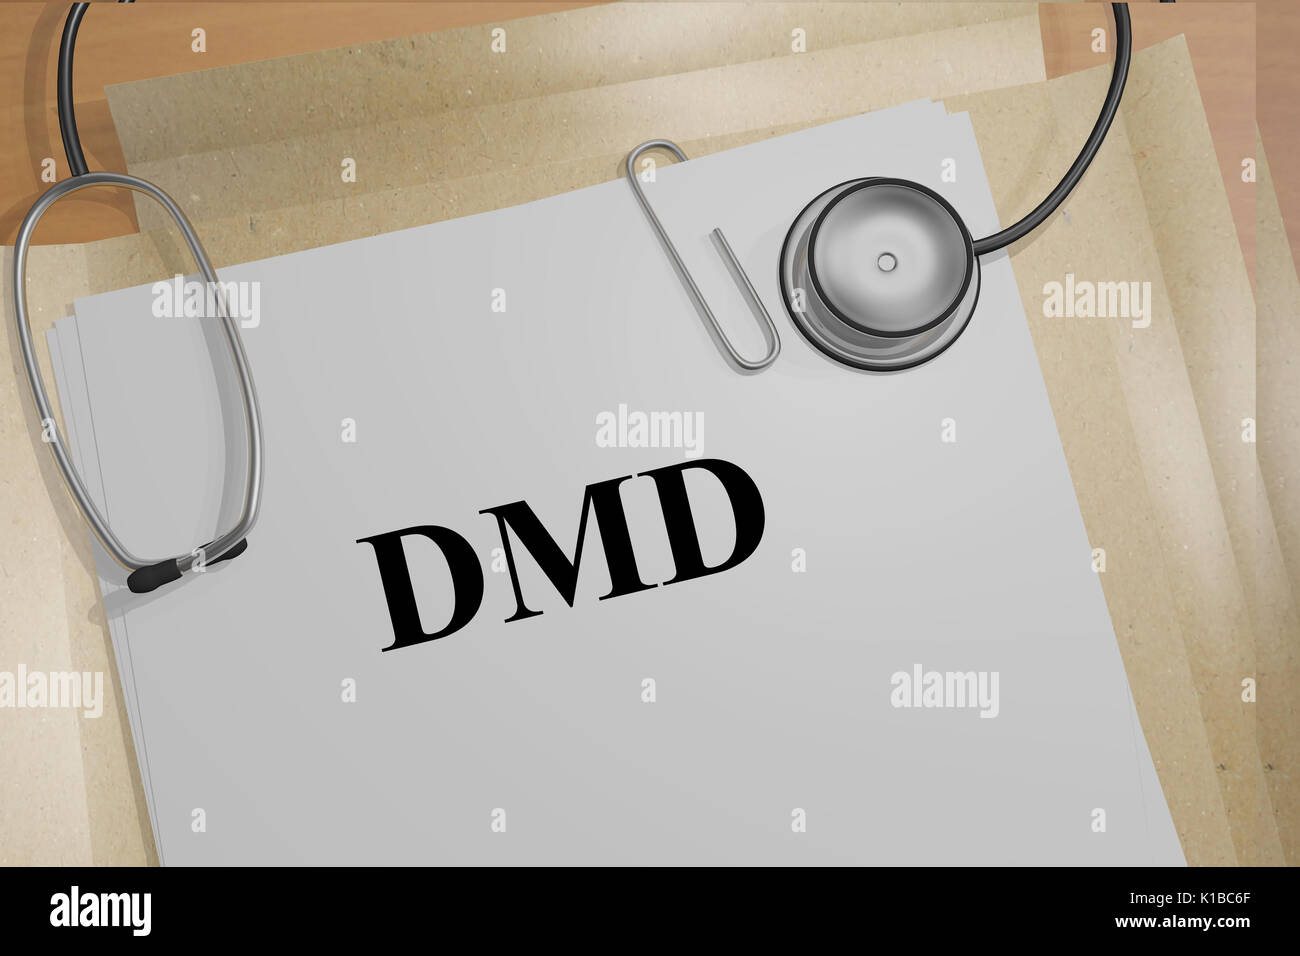 3D illustration of 'DMD' title on medical documents (Duchenne Muscular Dystrophy). Medicial concept. - Stock Image